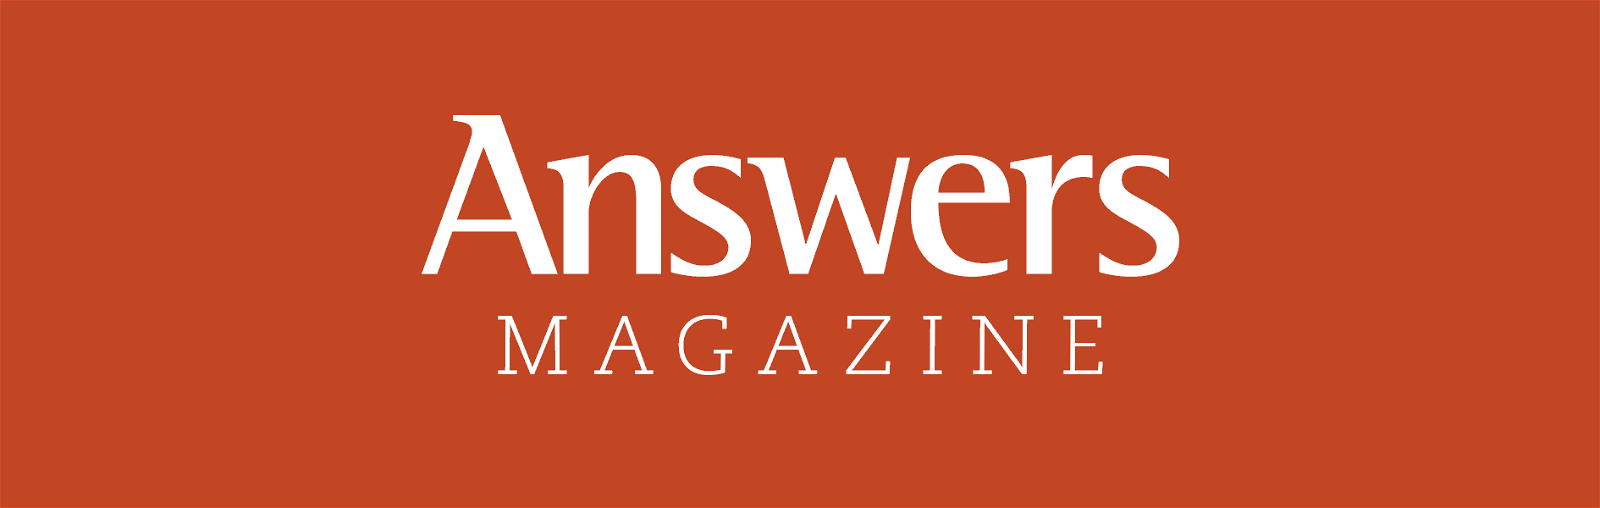 Answers Magazine Now Bimonthly!